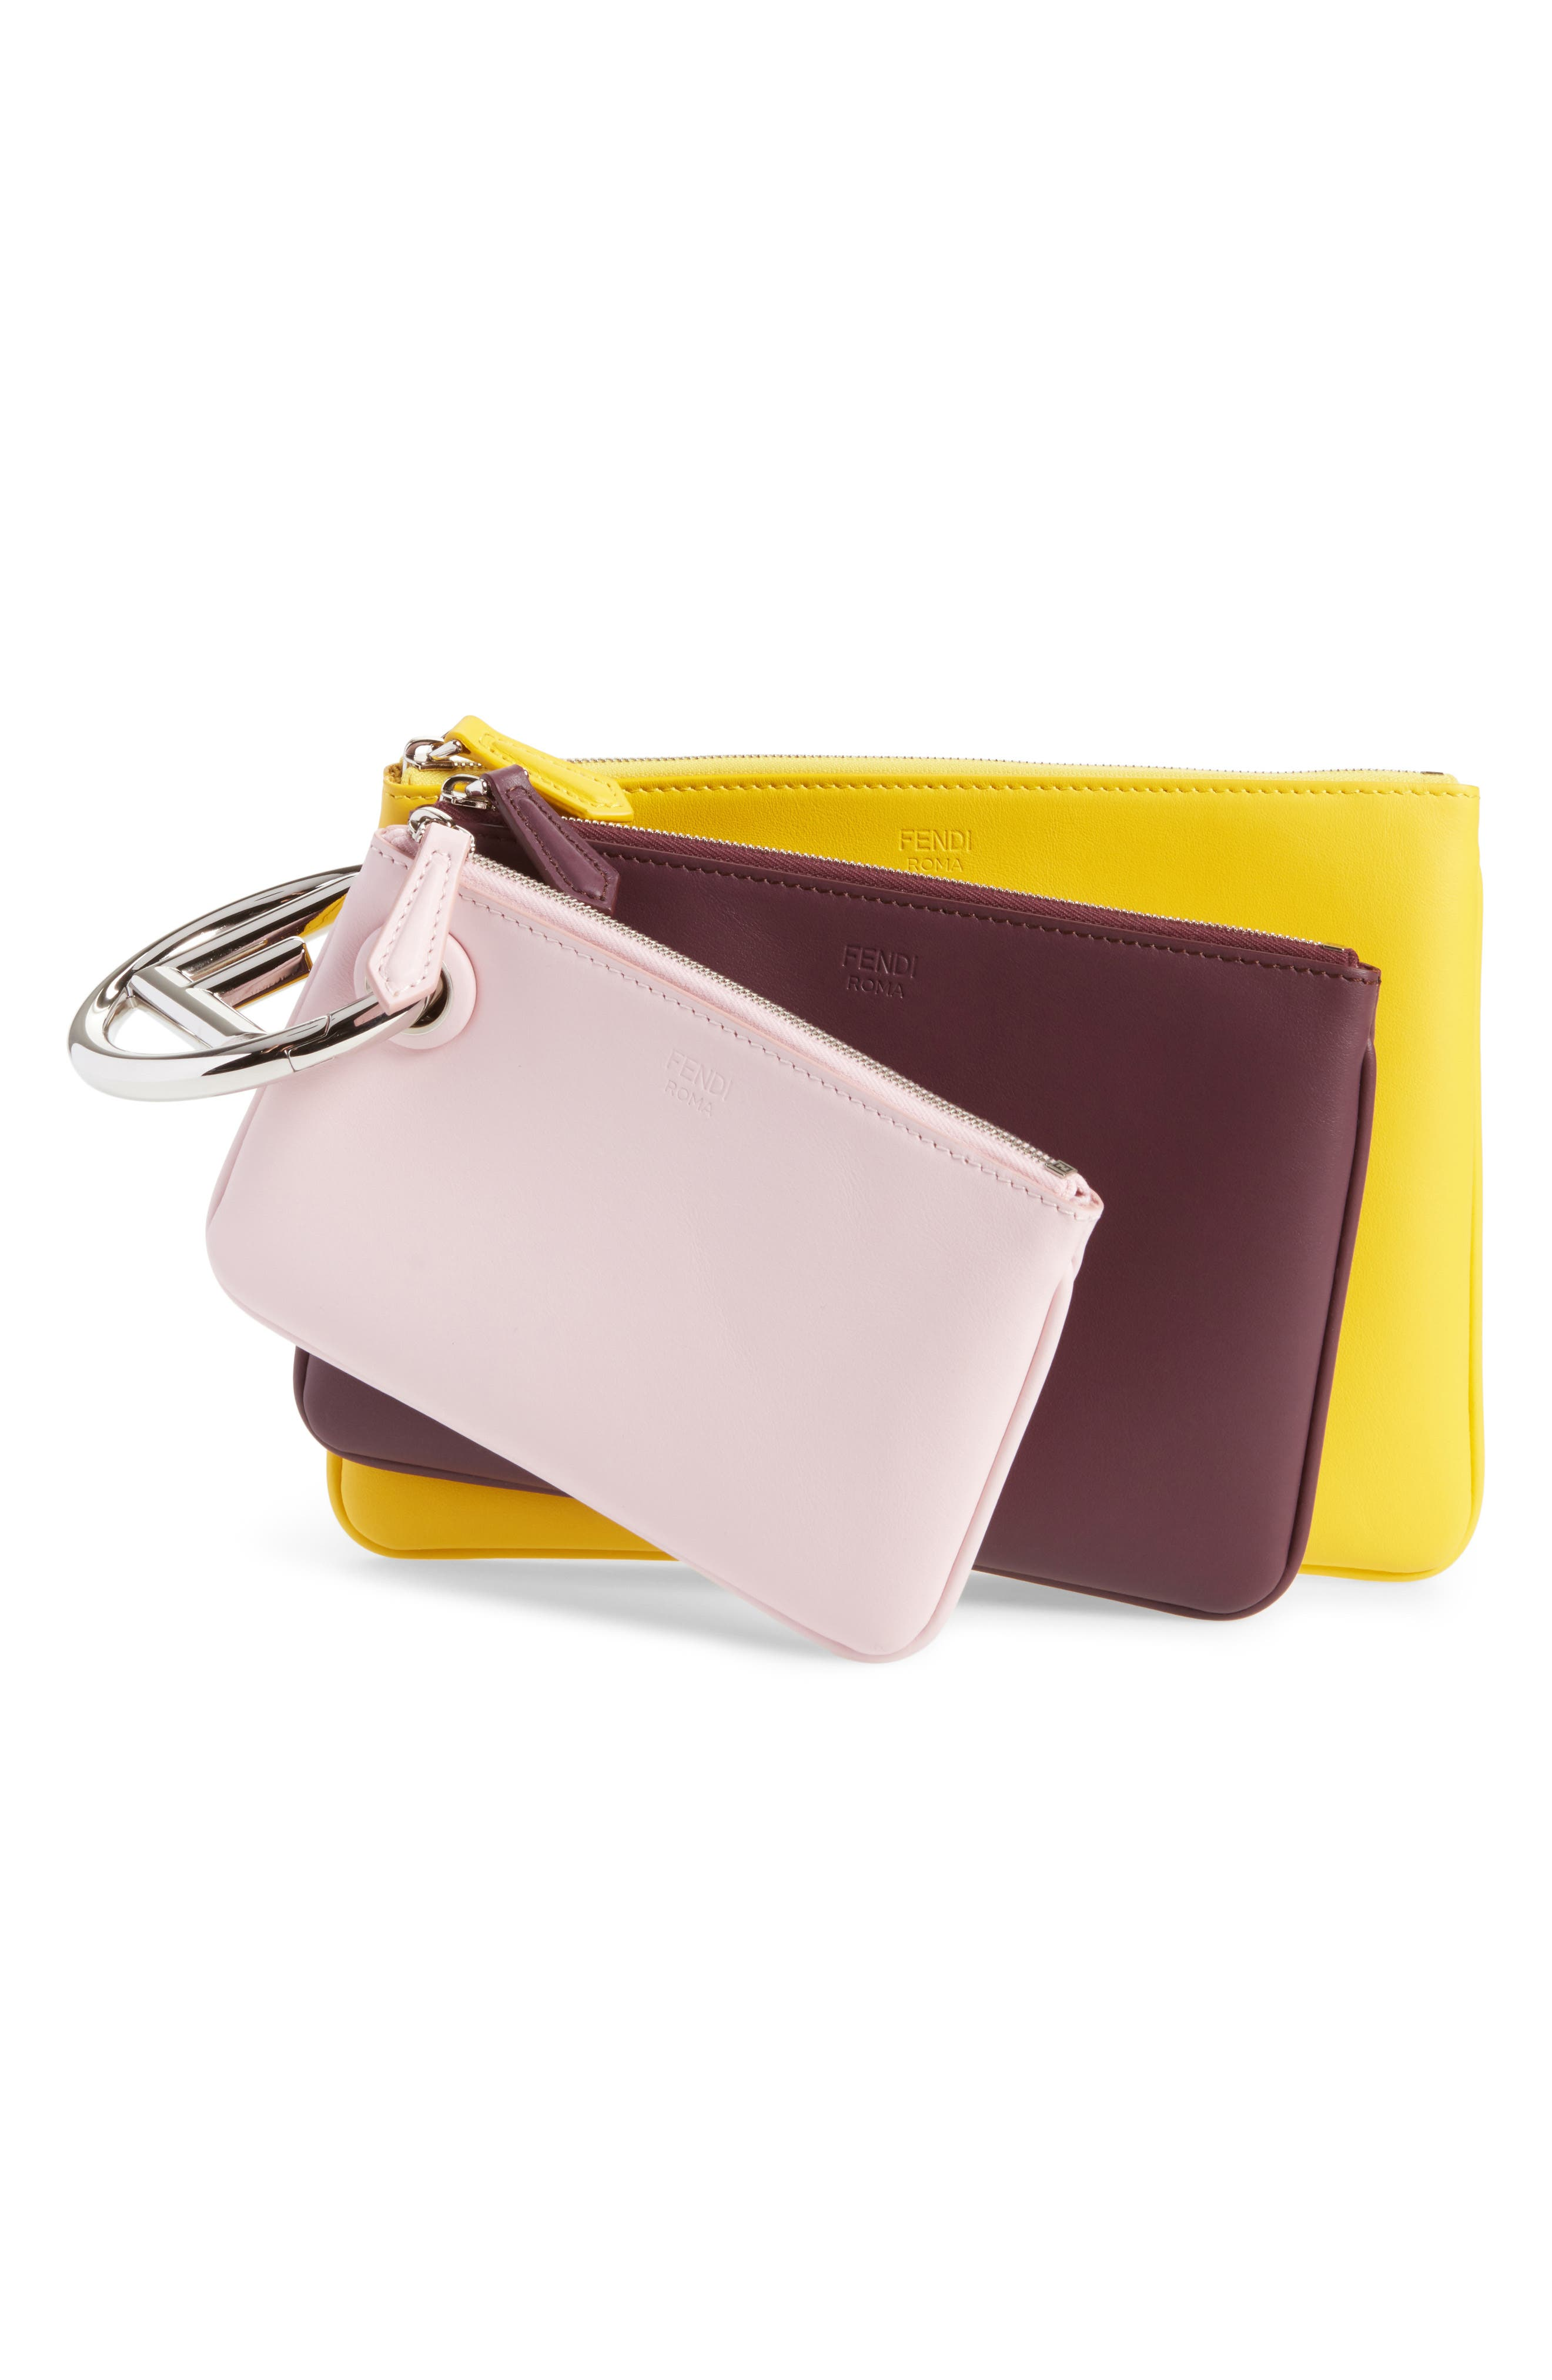 Multicolor Triplette Set of Three Leather Pouches,                         Main,                         color, Pink/ Burgundy/ Yellow